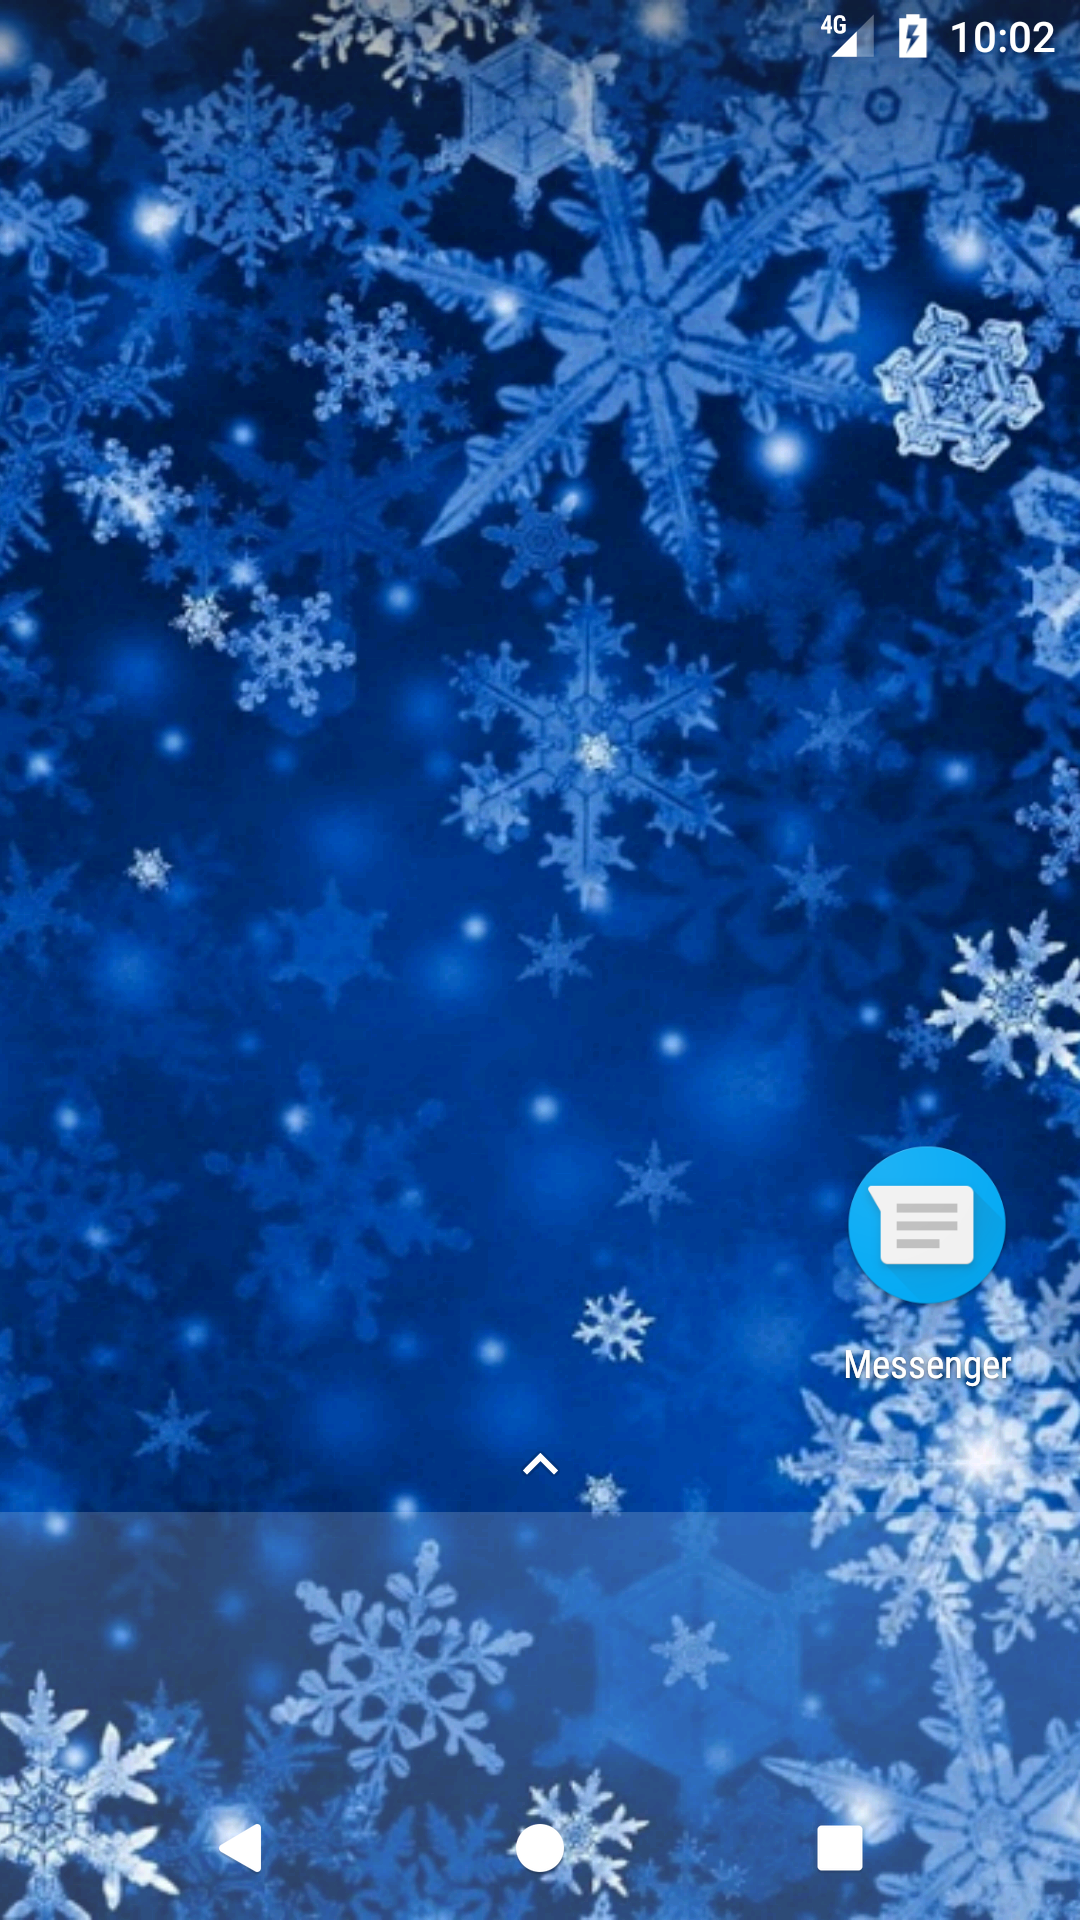 Snowflake wallpaper hd free appstore for android - Amazon wallpaper hd ...